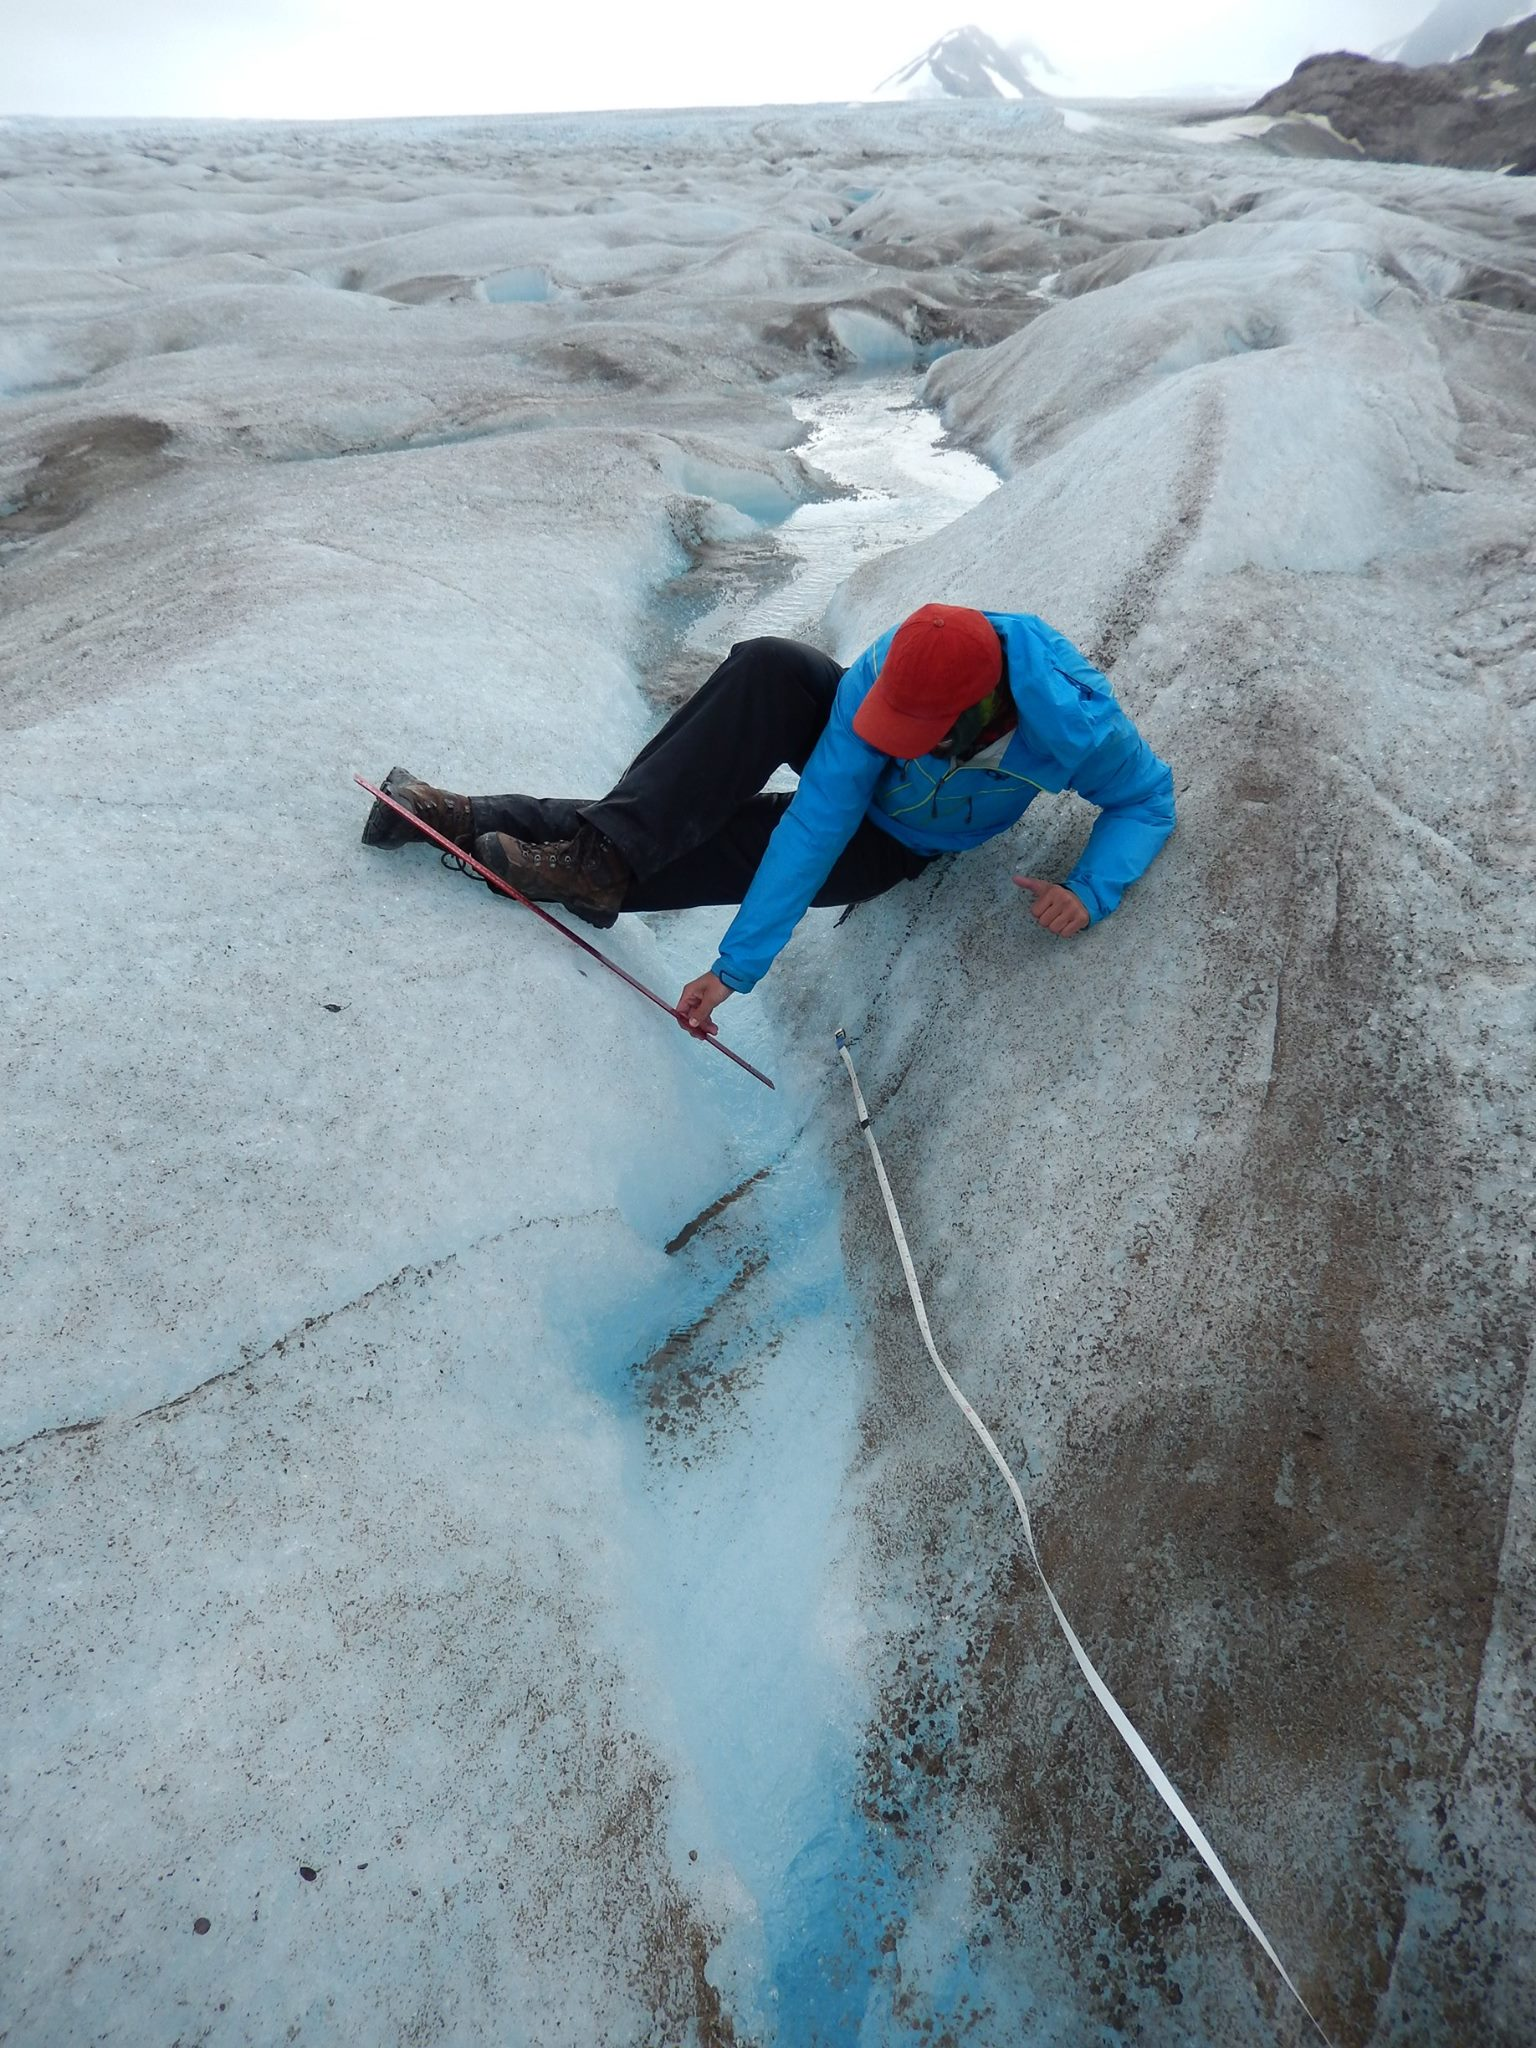 A biogeochemistry student researcher measures the dimensions of a supraglacial stream in the ablation zone of the Llewellyn Glacier. Photo credit: Molly Peek.